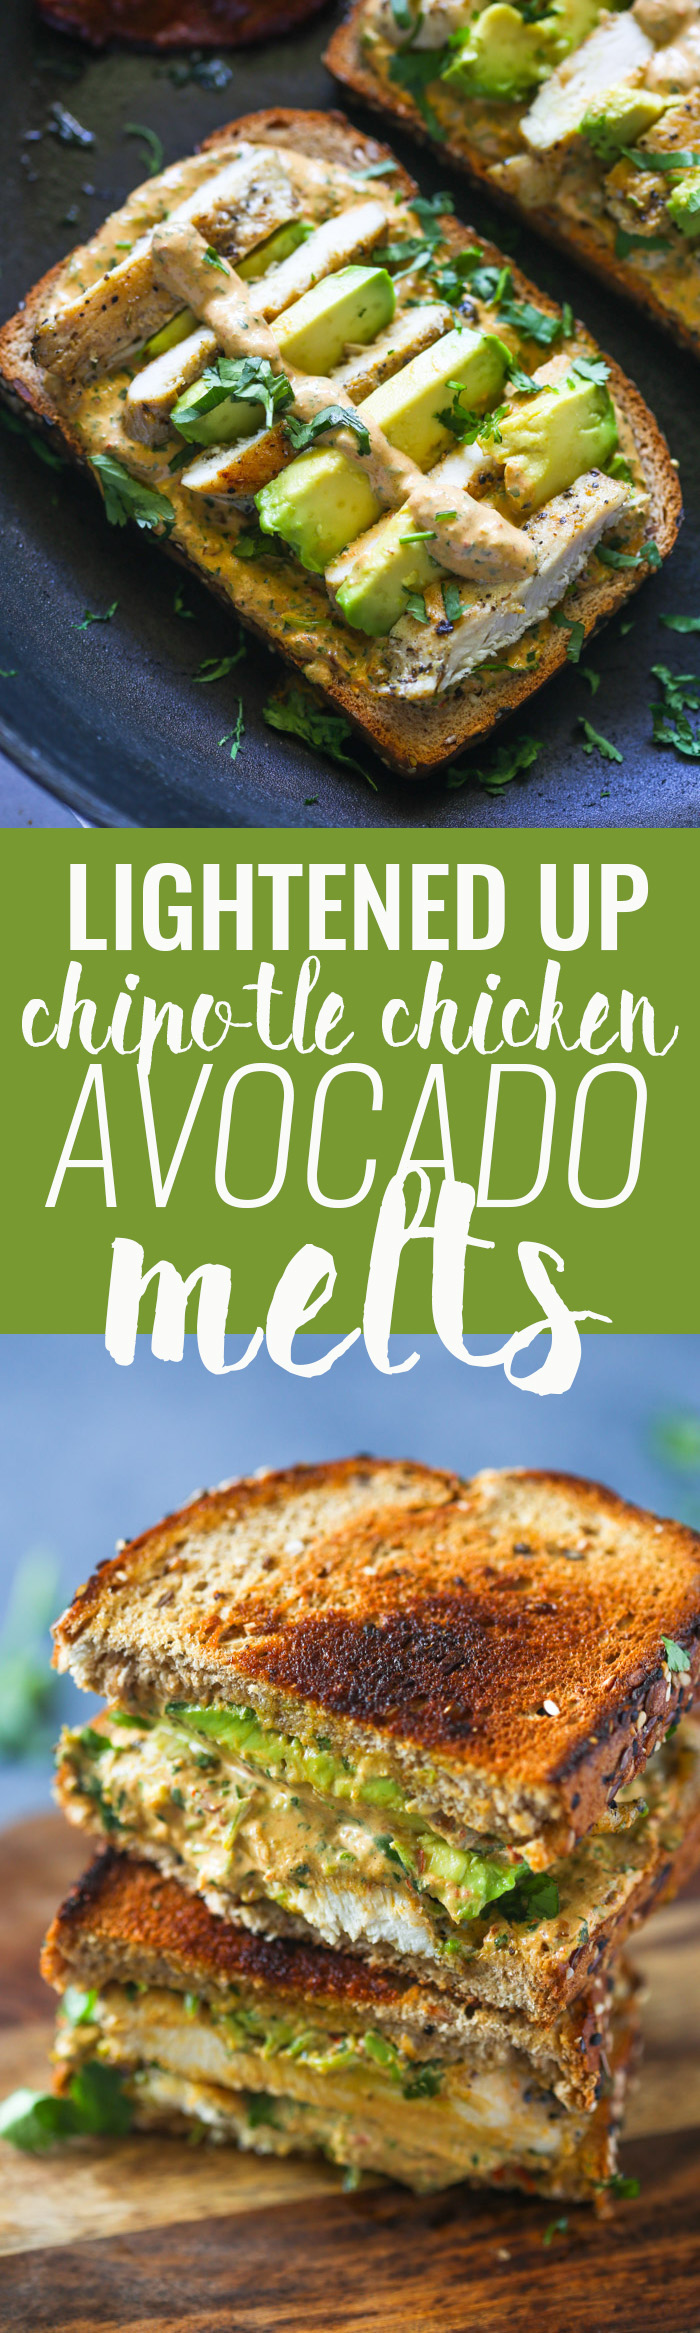 Lightened Up Chipotle Chicken and Avocado Melts